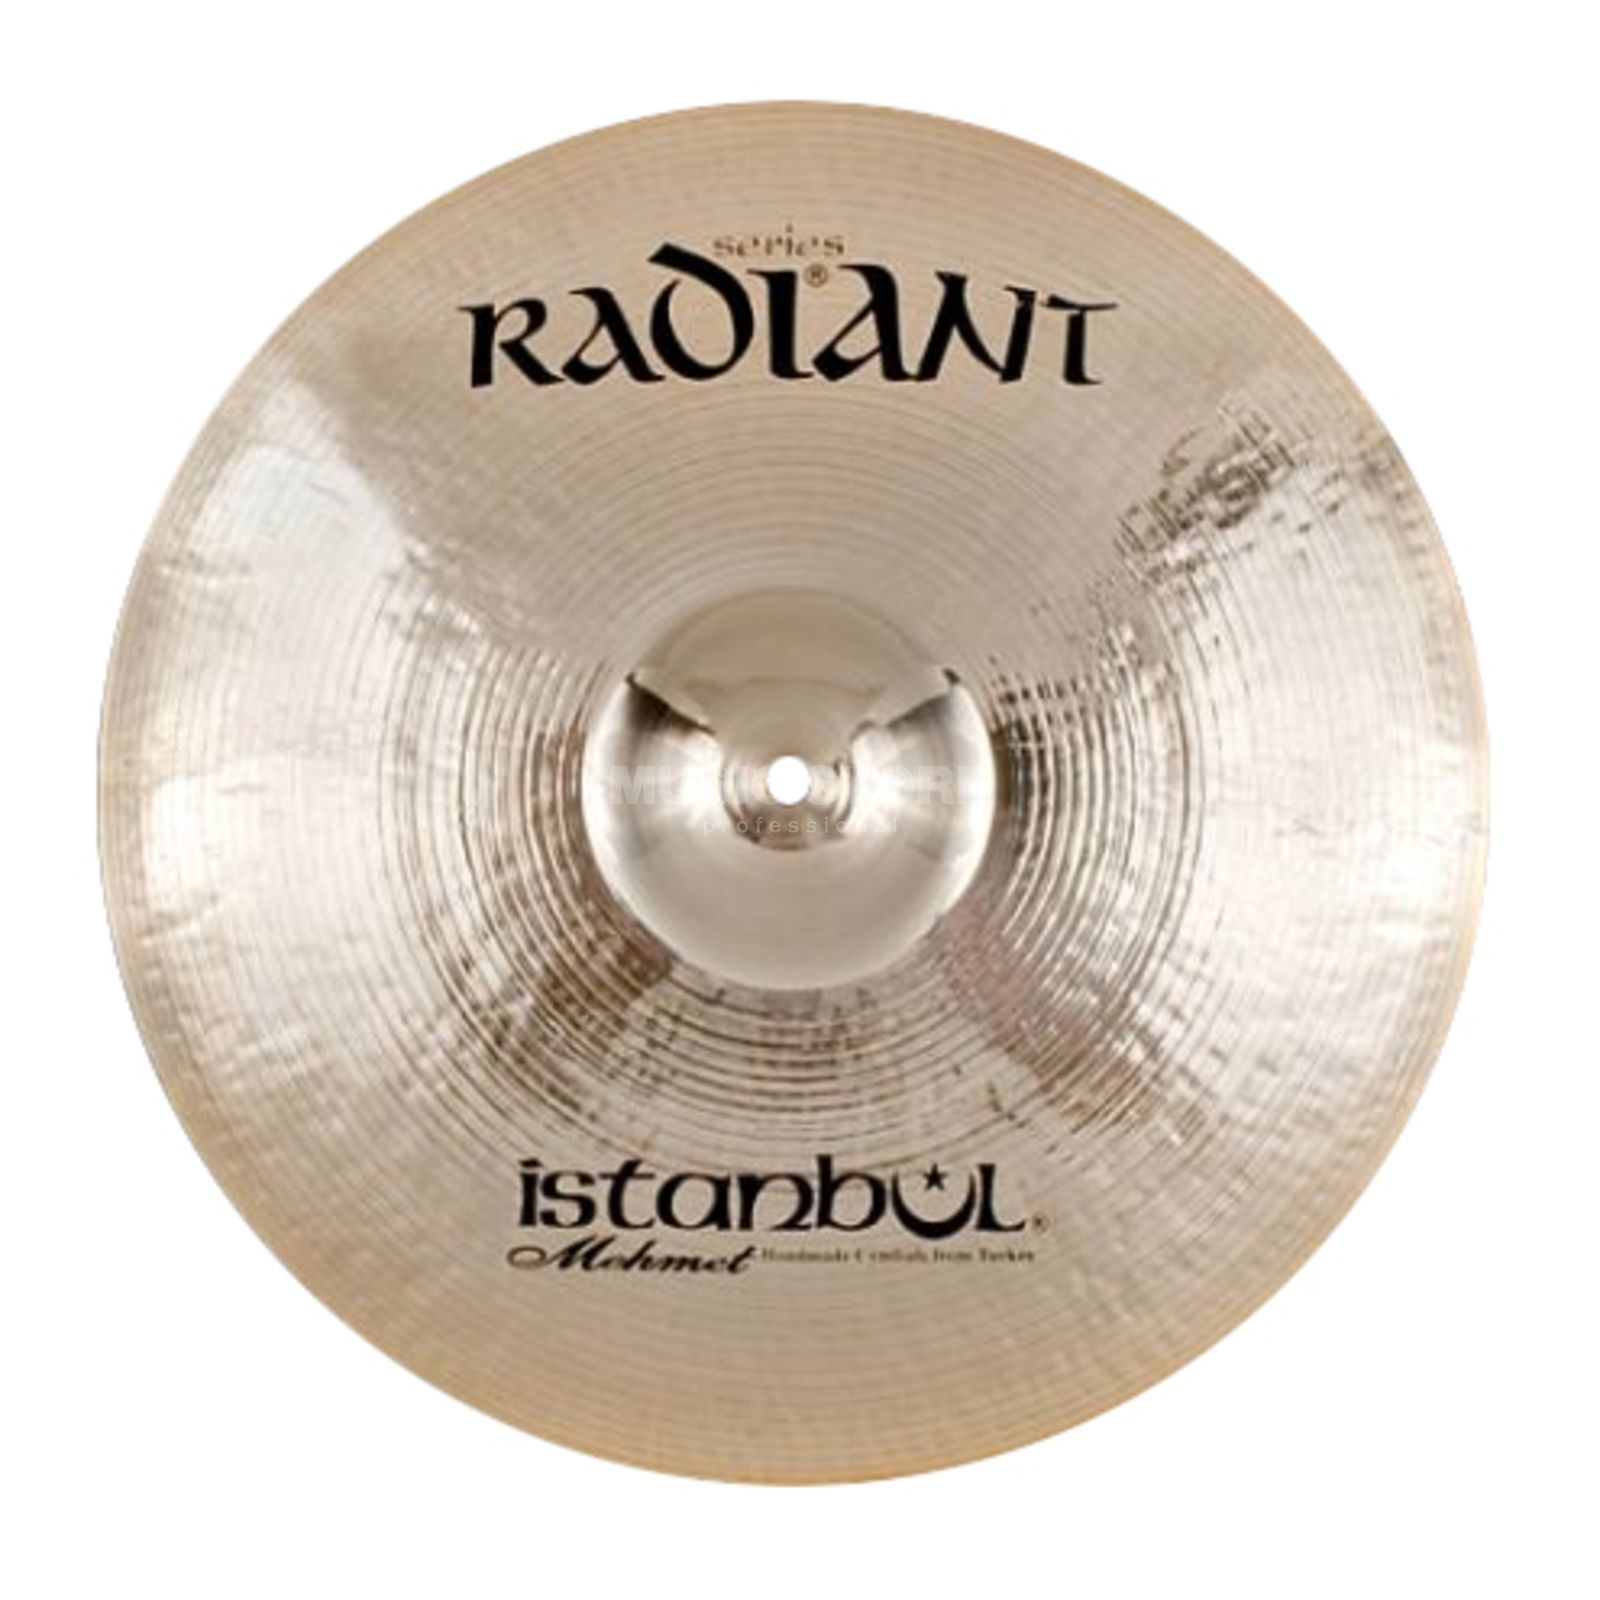 "Istanbul Radiant Medium Crash 15"", R-CM16 Produktbillede"